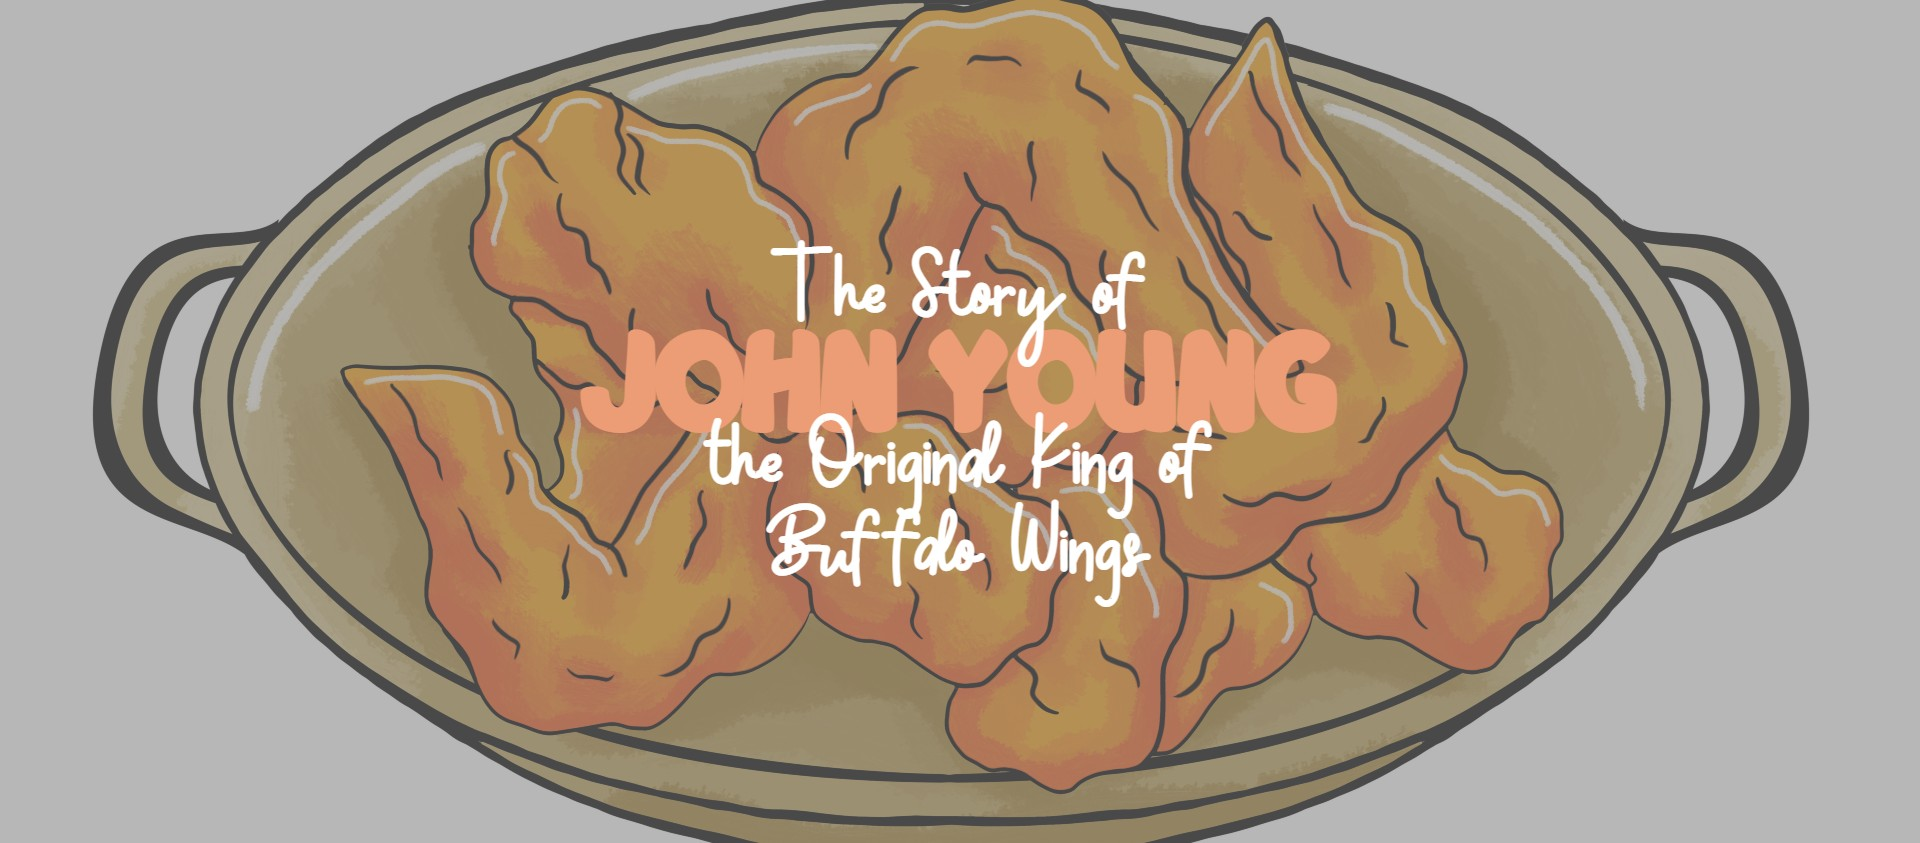 The Story of John Young, the Original King of Buffalo Wings